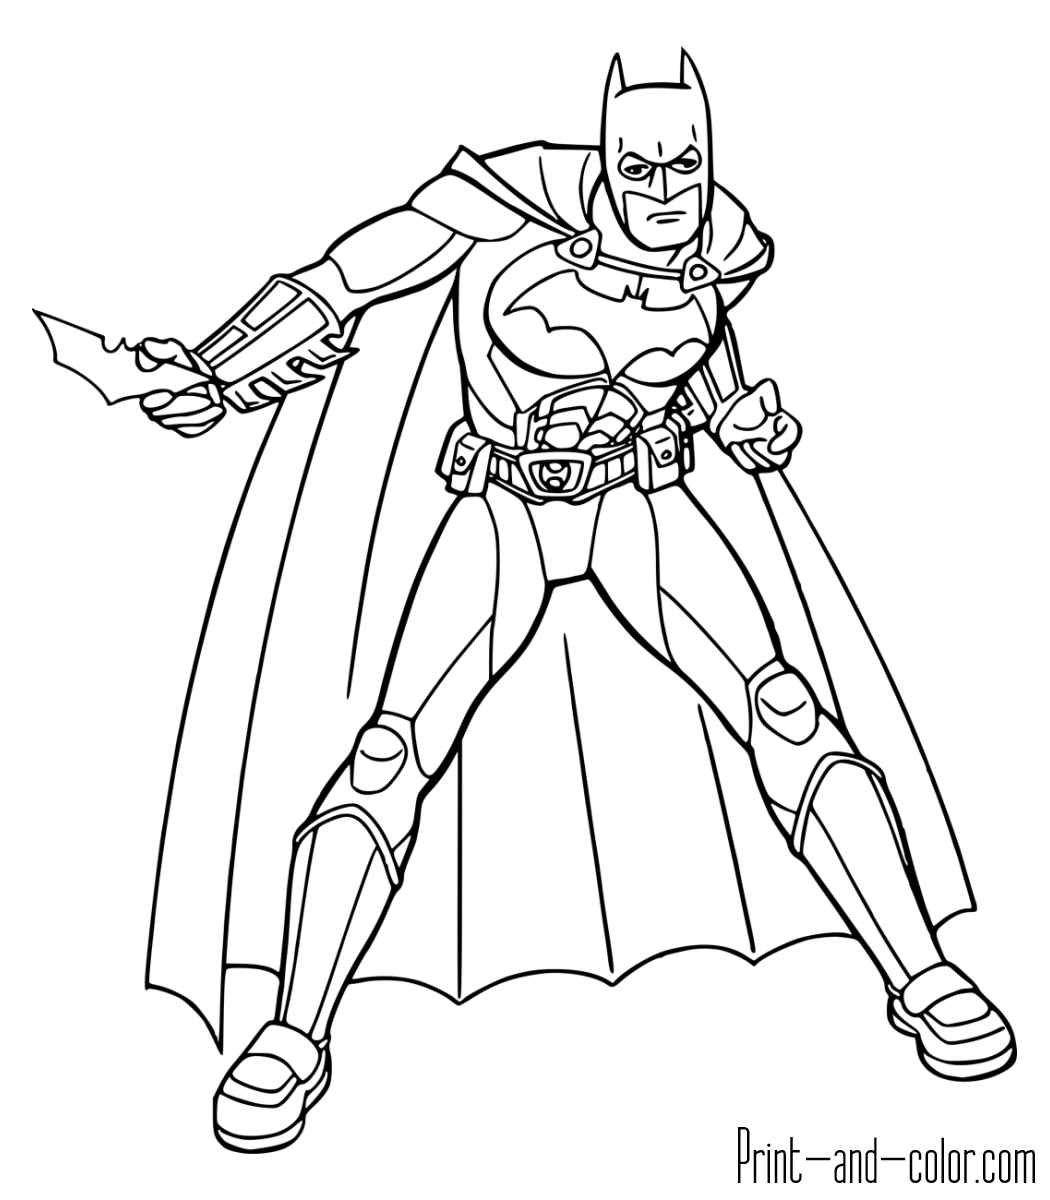 batman printable welcome to miss priss mickey mouse batman coloring pages batman printable